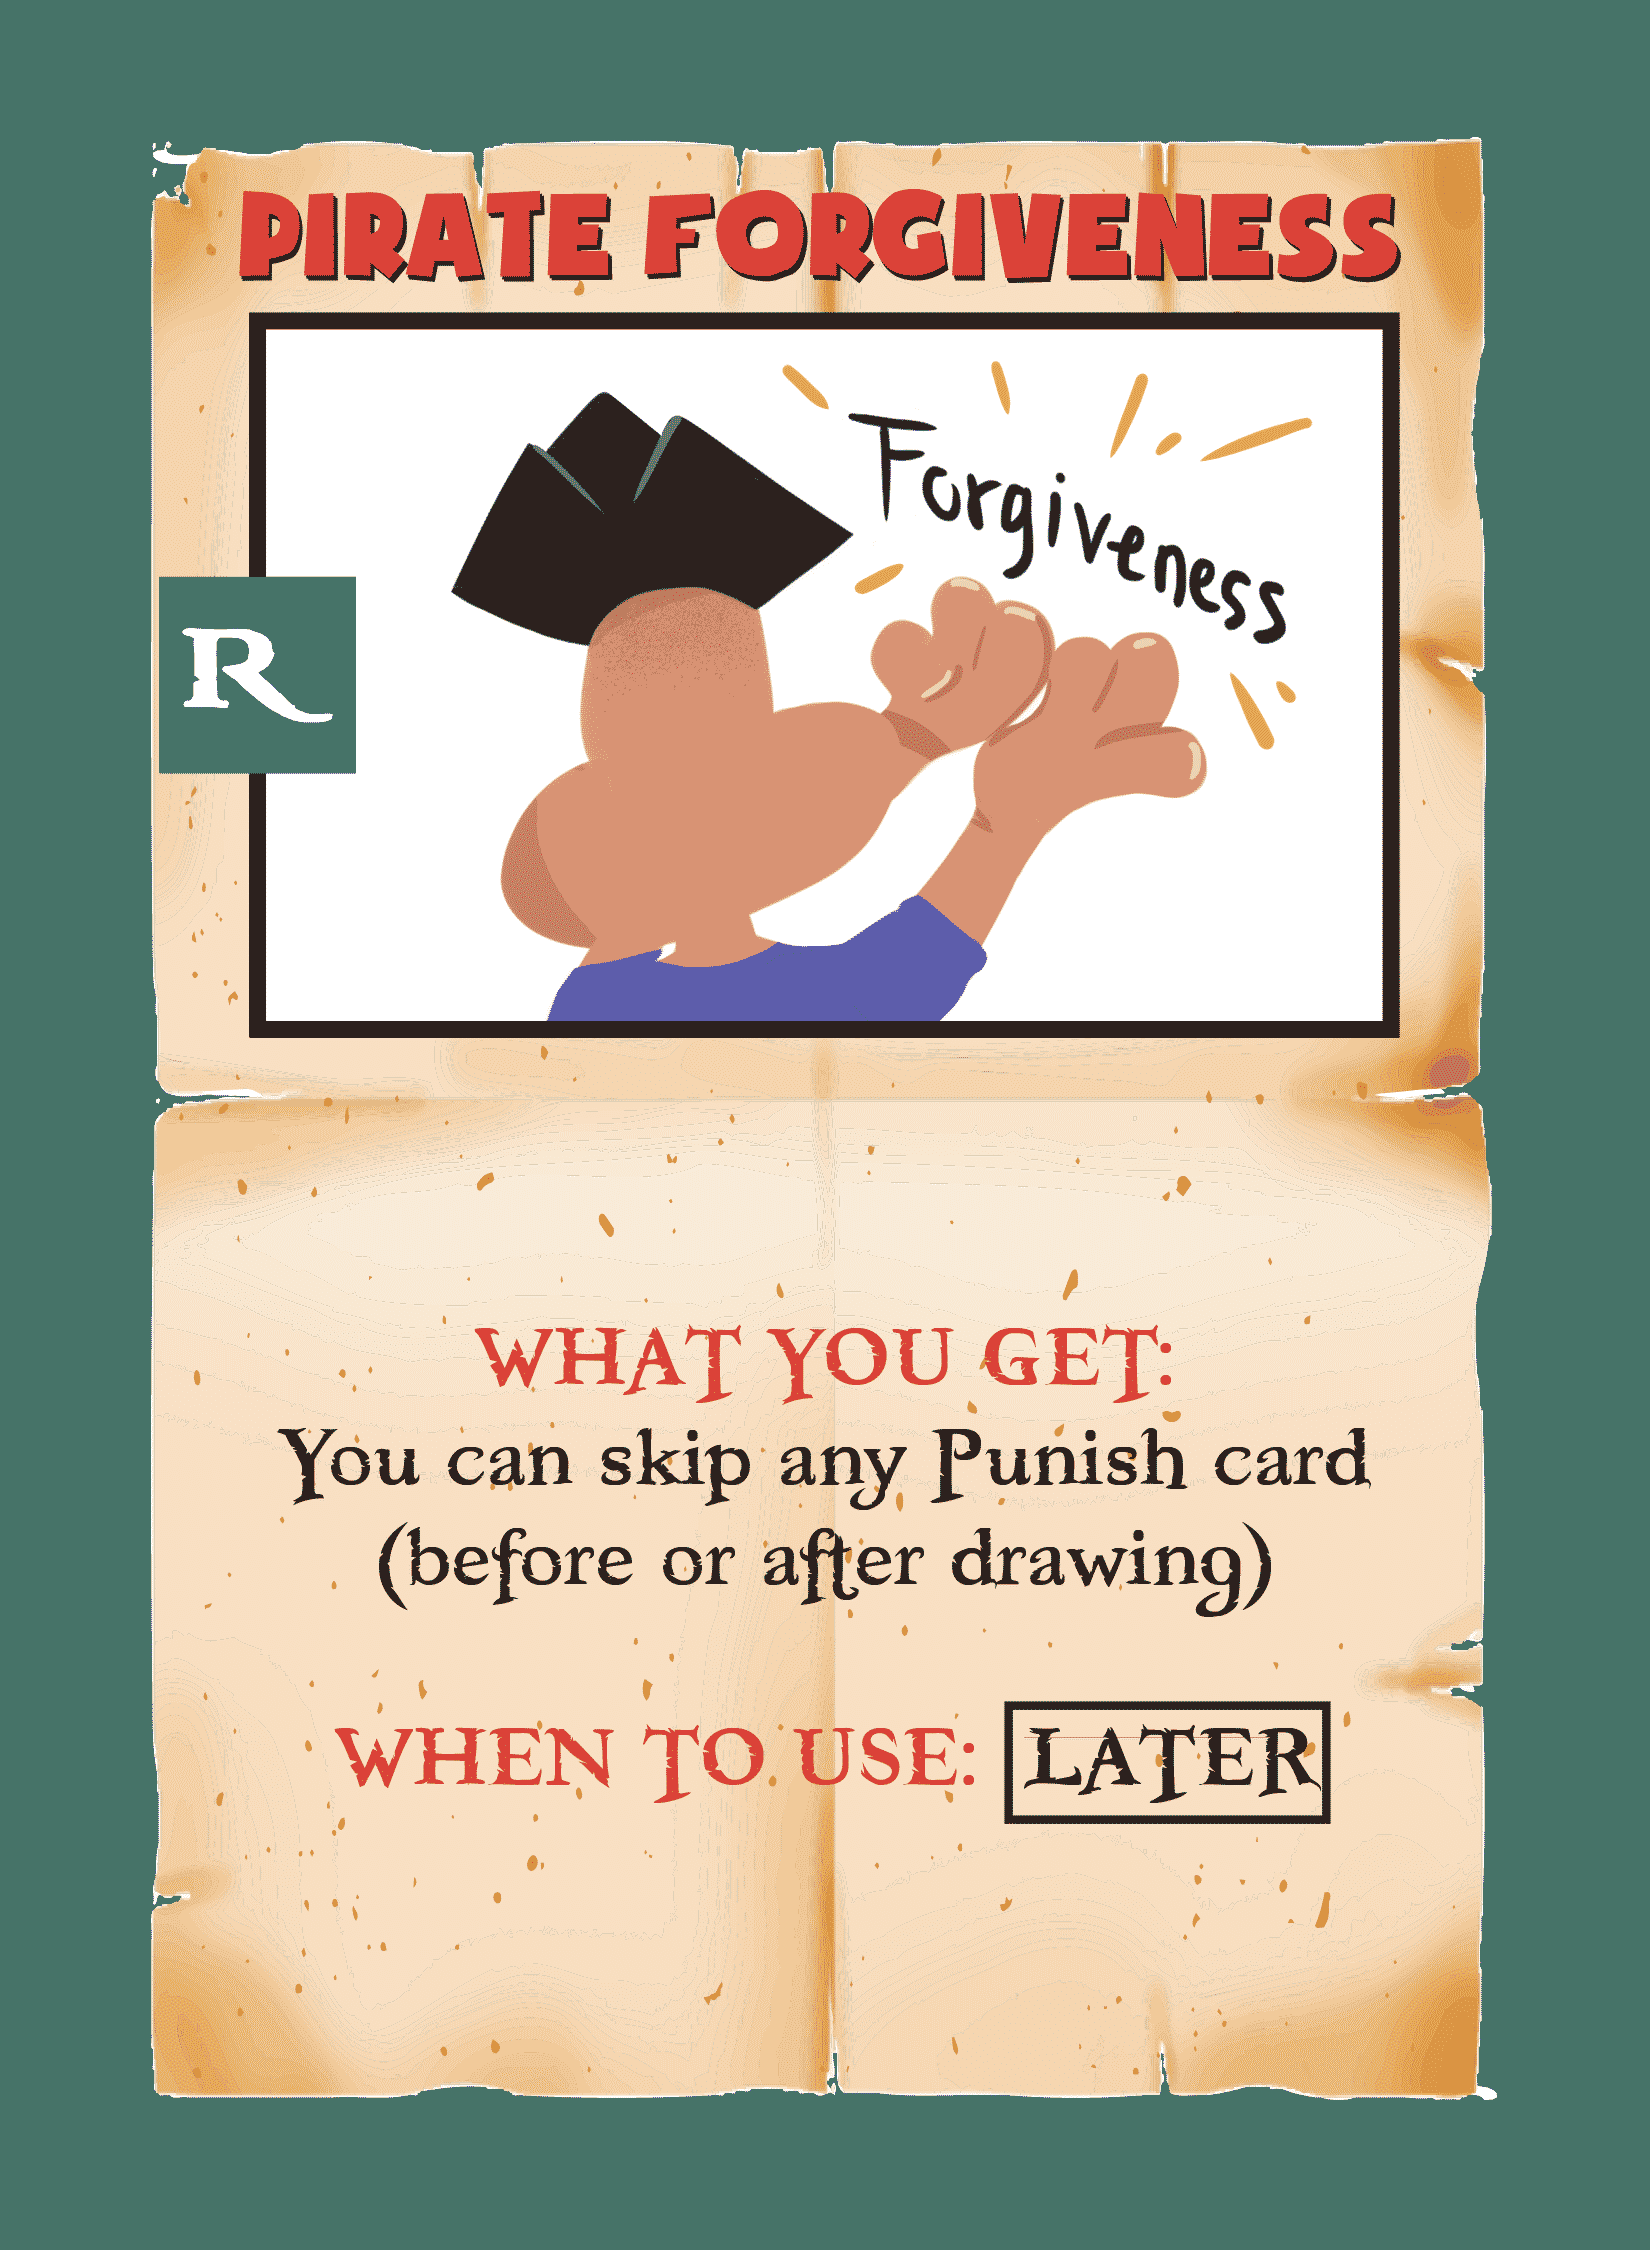 pirate-forgive-pokersize